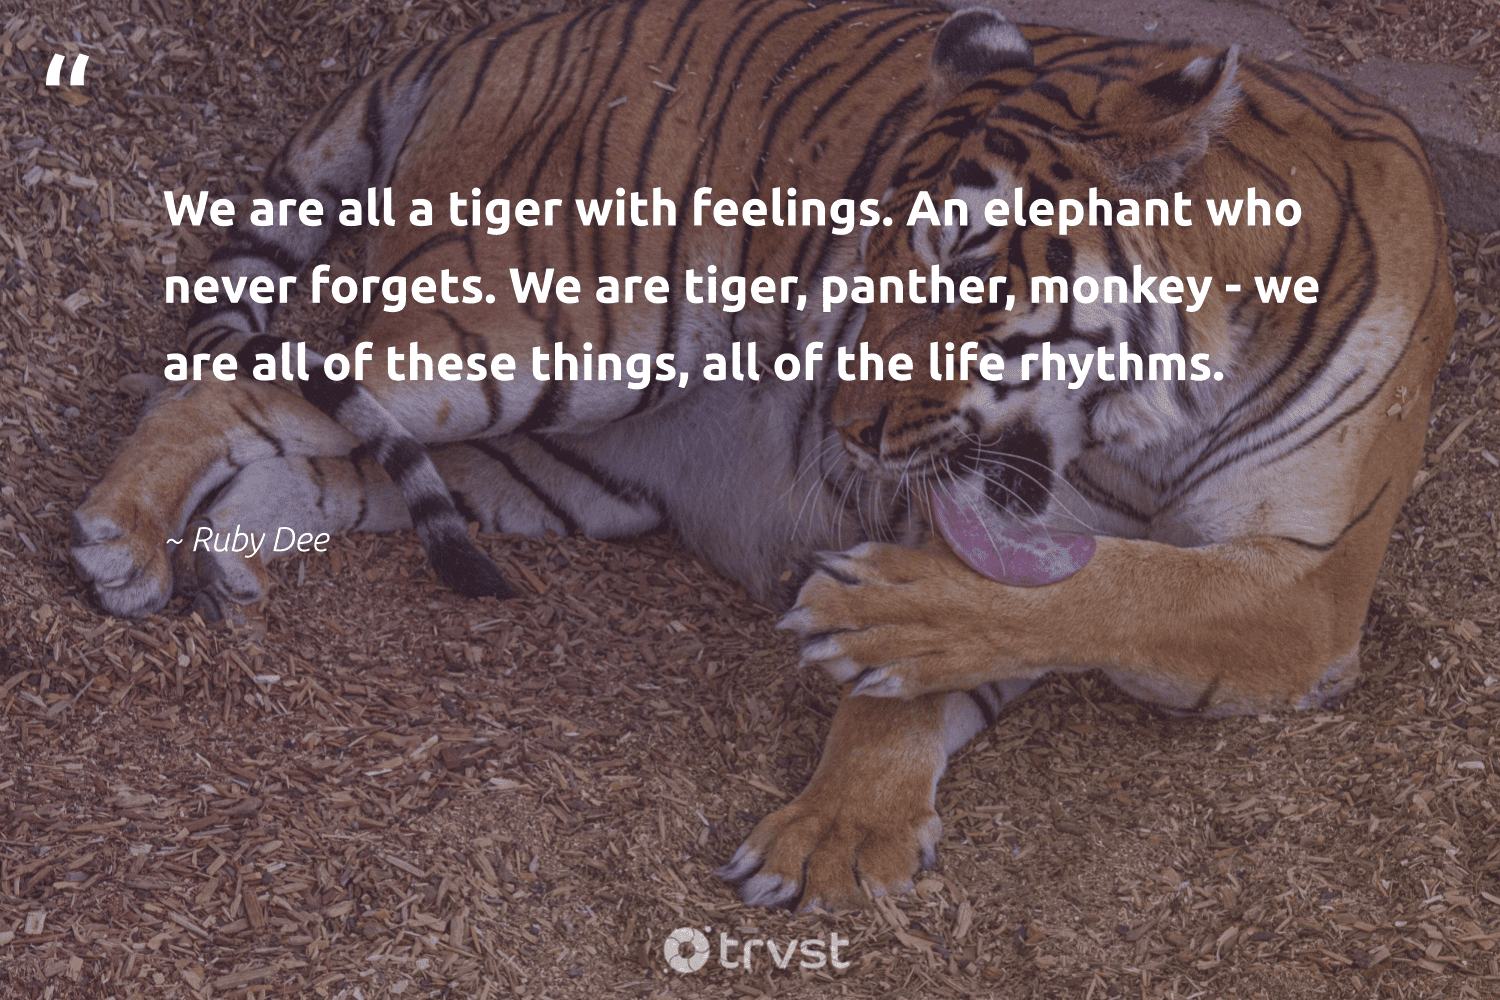 """We are all a tiger with feelings. An elephant who never forgets. We are tiger, panther, monkey - we are all of these things, all of the life rhythms.""  - Ruby Dee #trvst #quotes #tiger #monkey #animalphotography #takeaction #conservation #gogreen #biodiversity #planetearthfirst #sustainability #changetheworld"